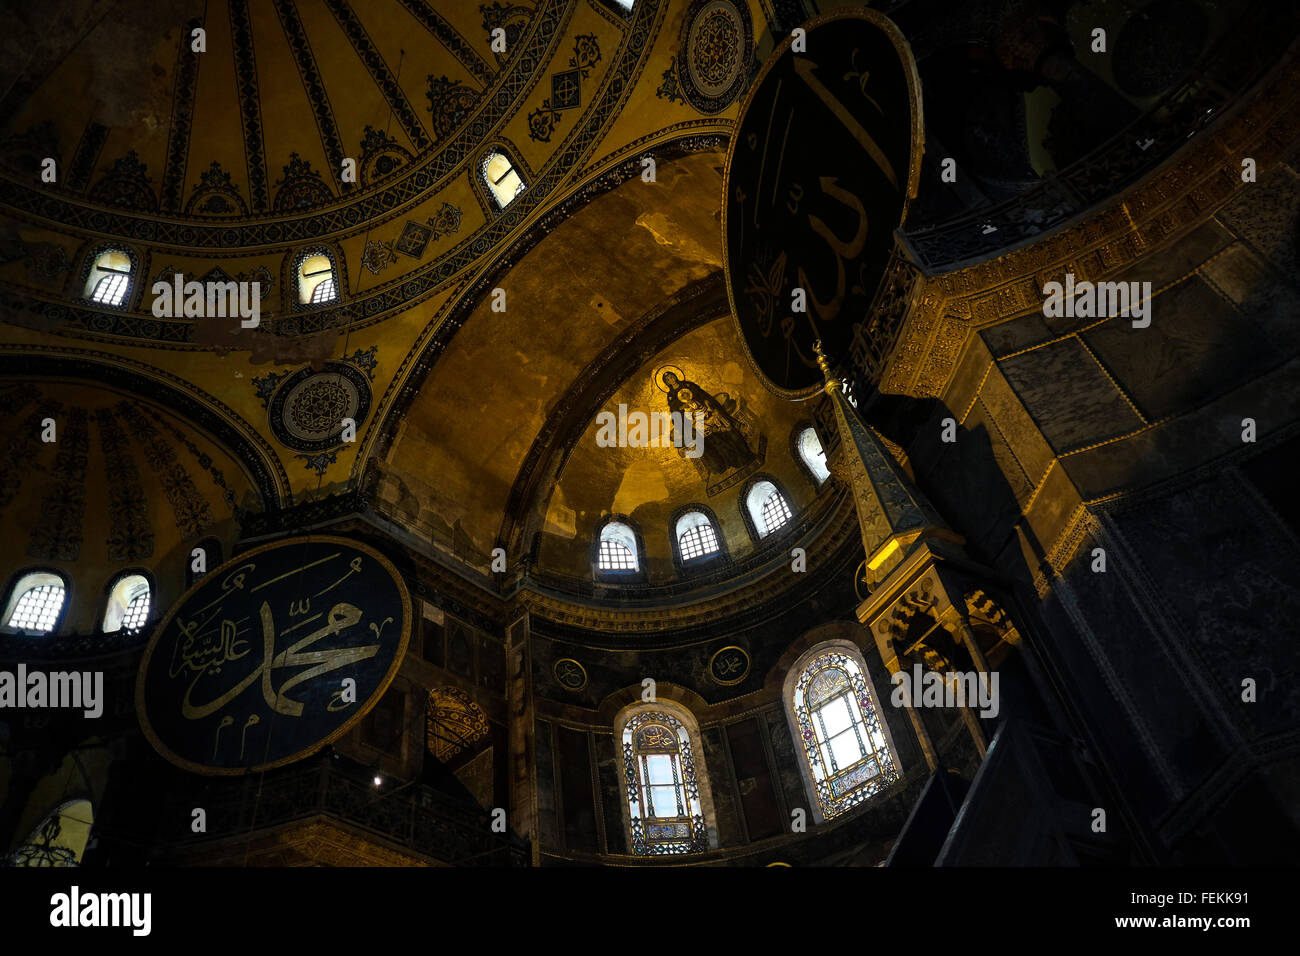 The roof of Hagia Sofia interior, Istanbul, Turkey on May 3, 2015. - Stock Image